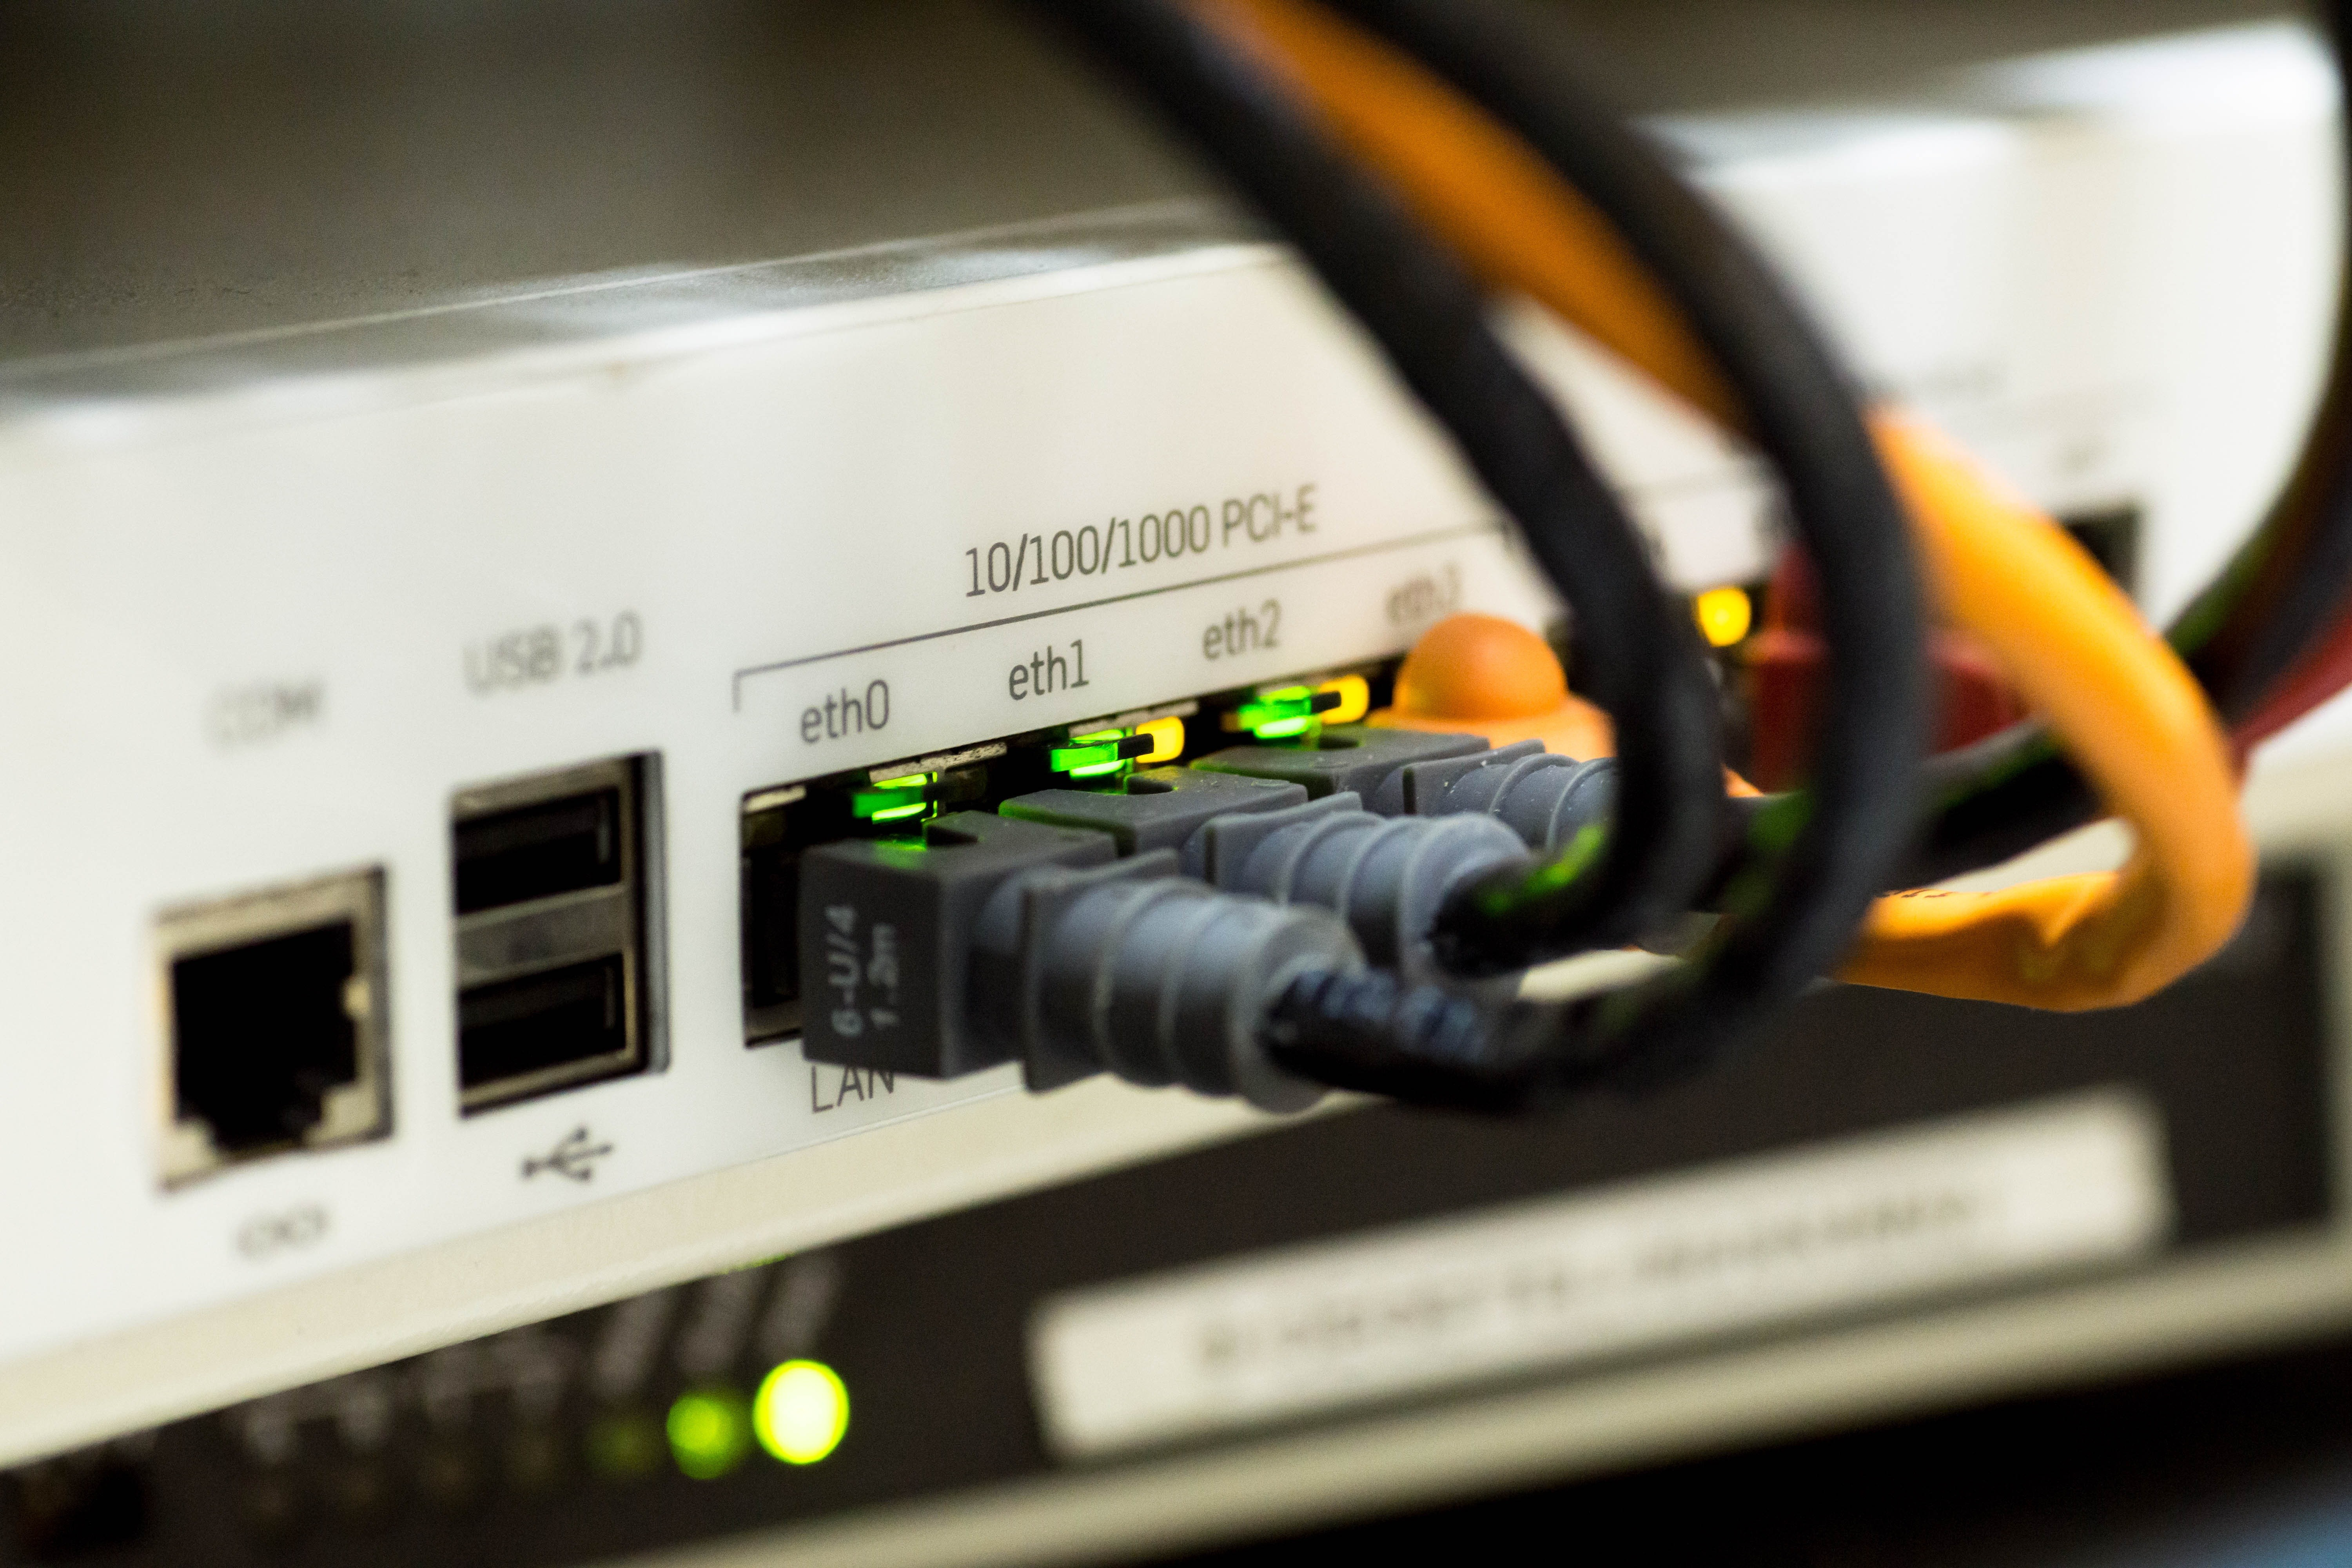 network-cable-ethernet-computer-159304.jpeg__6000x4000_q90_crop_subsampling-2_upscale.jpg